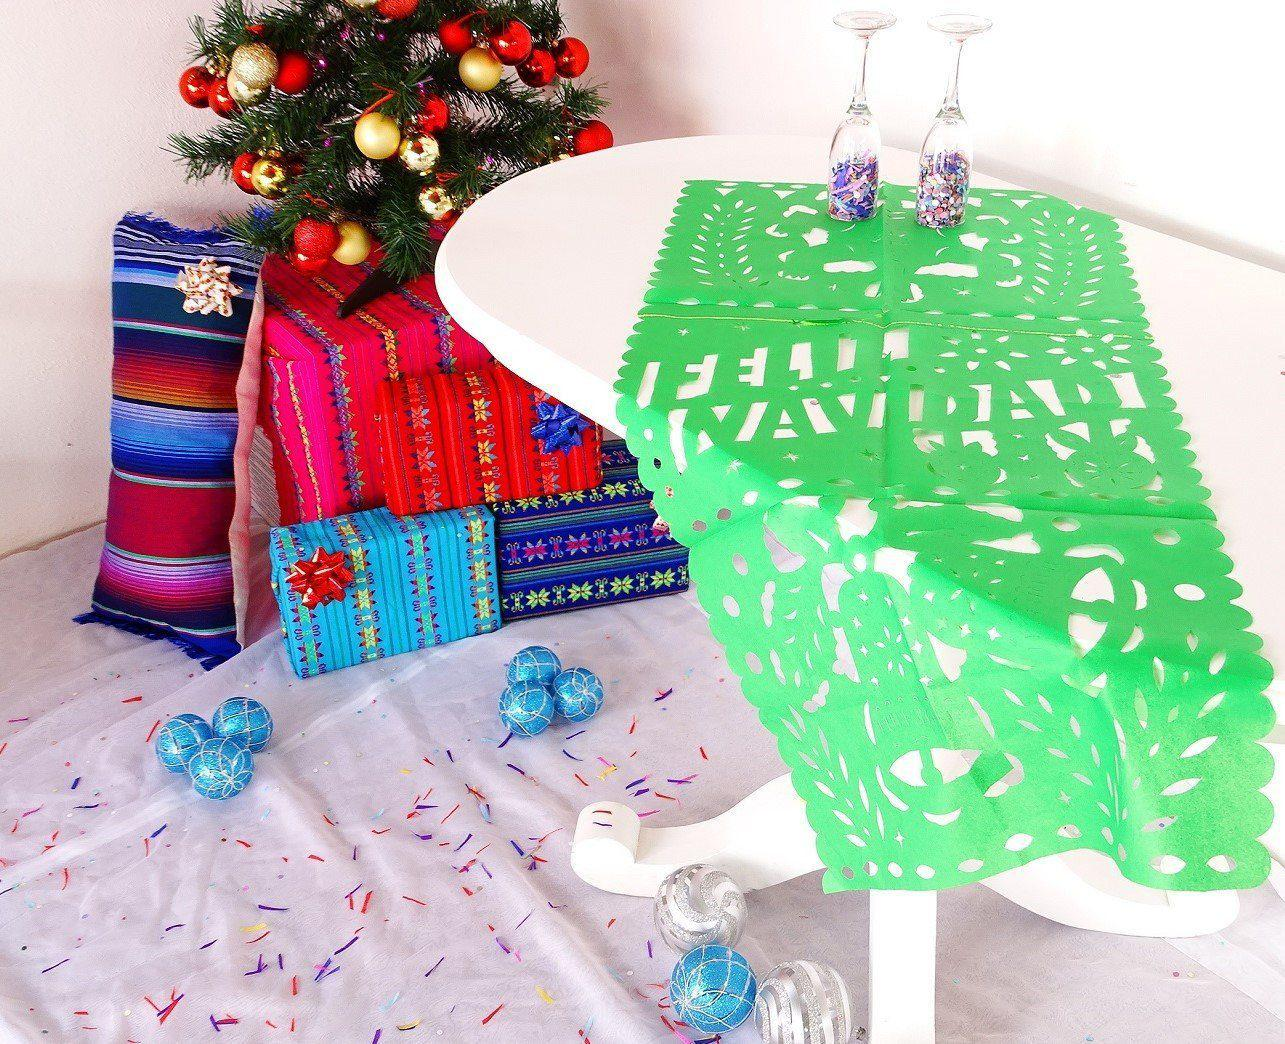 Mexican Christmas.Feliz Navidad Mexican Christmas Decor Green Table Runner Holiday Decorations Holiday Party Decor Fiestas Navidenas